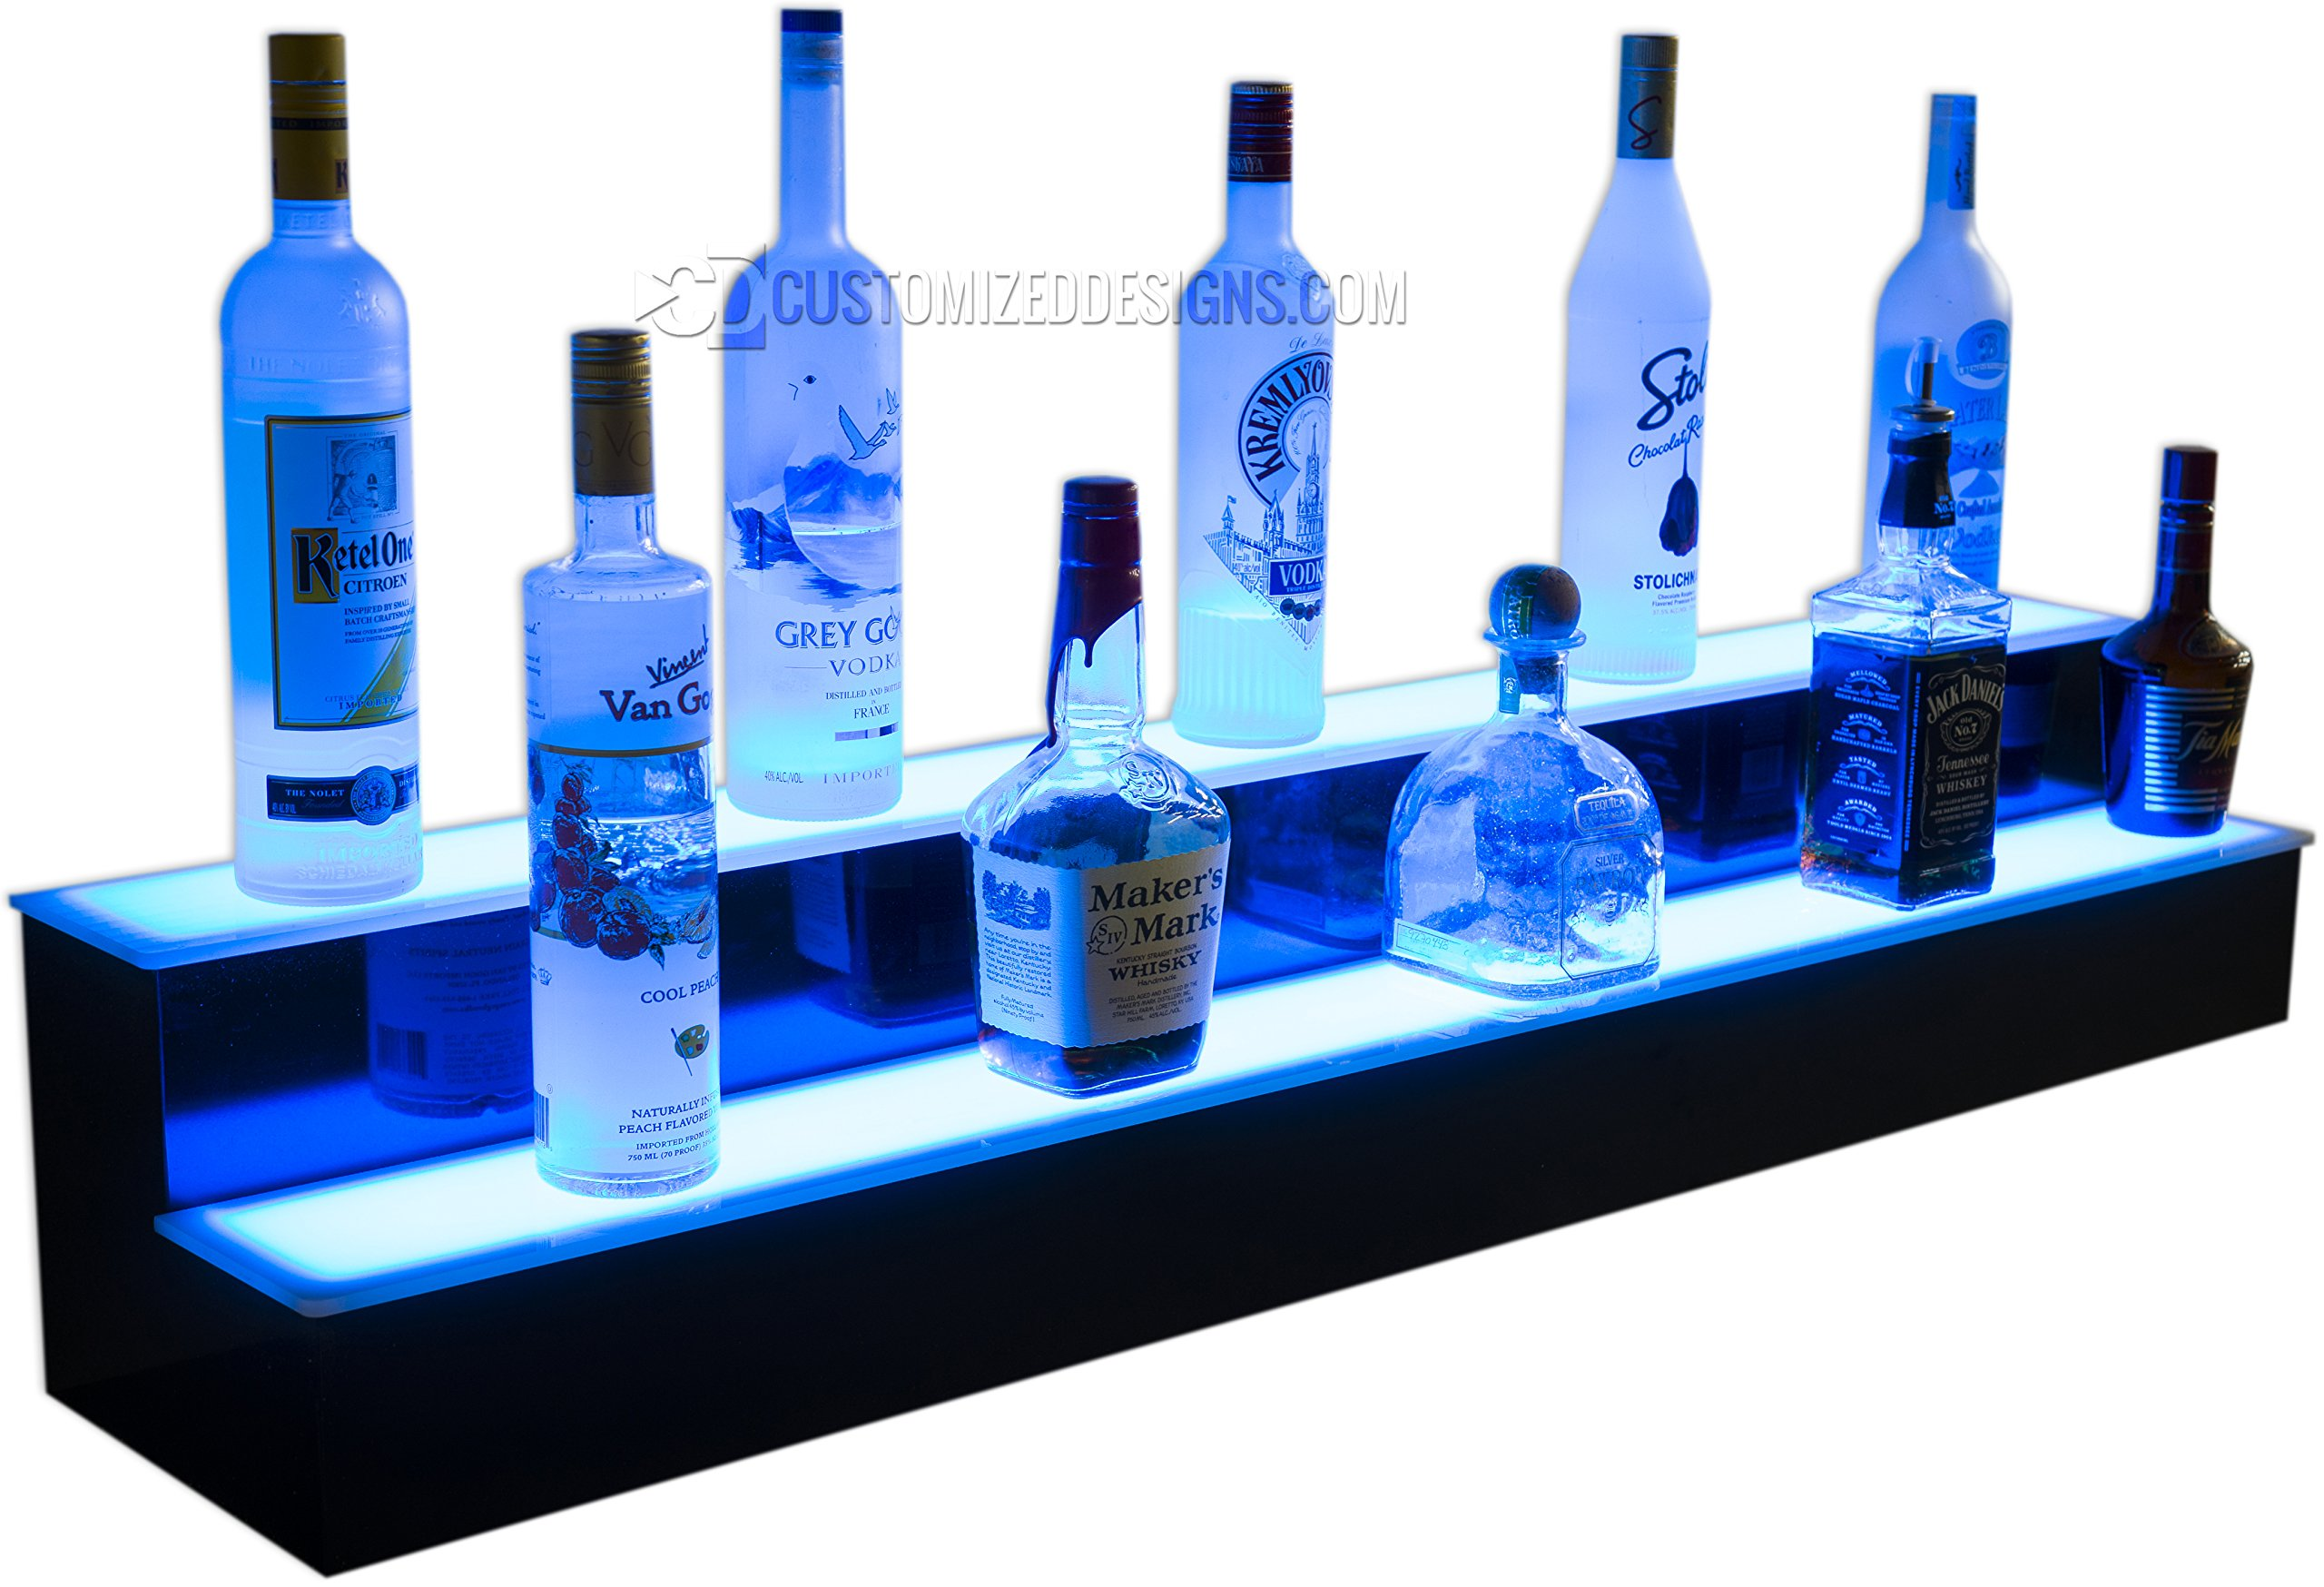 84'' 2 Step Commercial Grade LED Lighted Bottle Display - Remote Control LED Lighting by Customized Designs (Image #2)